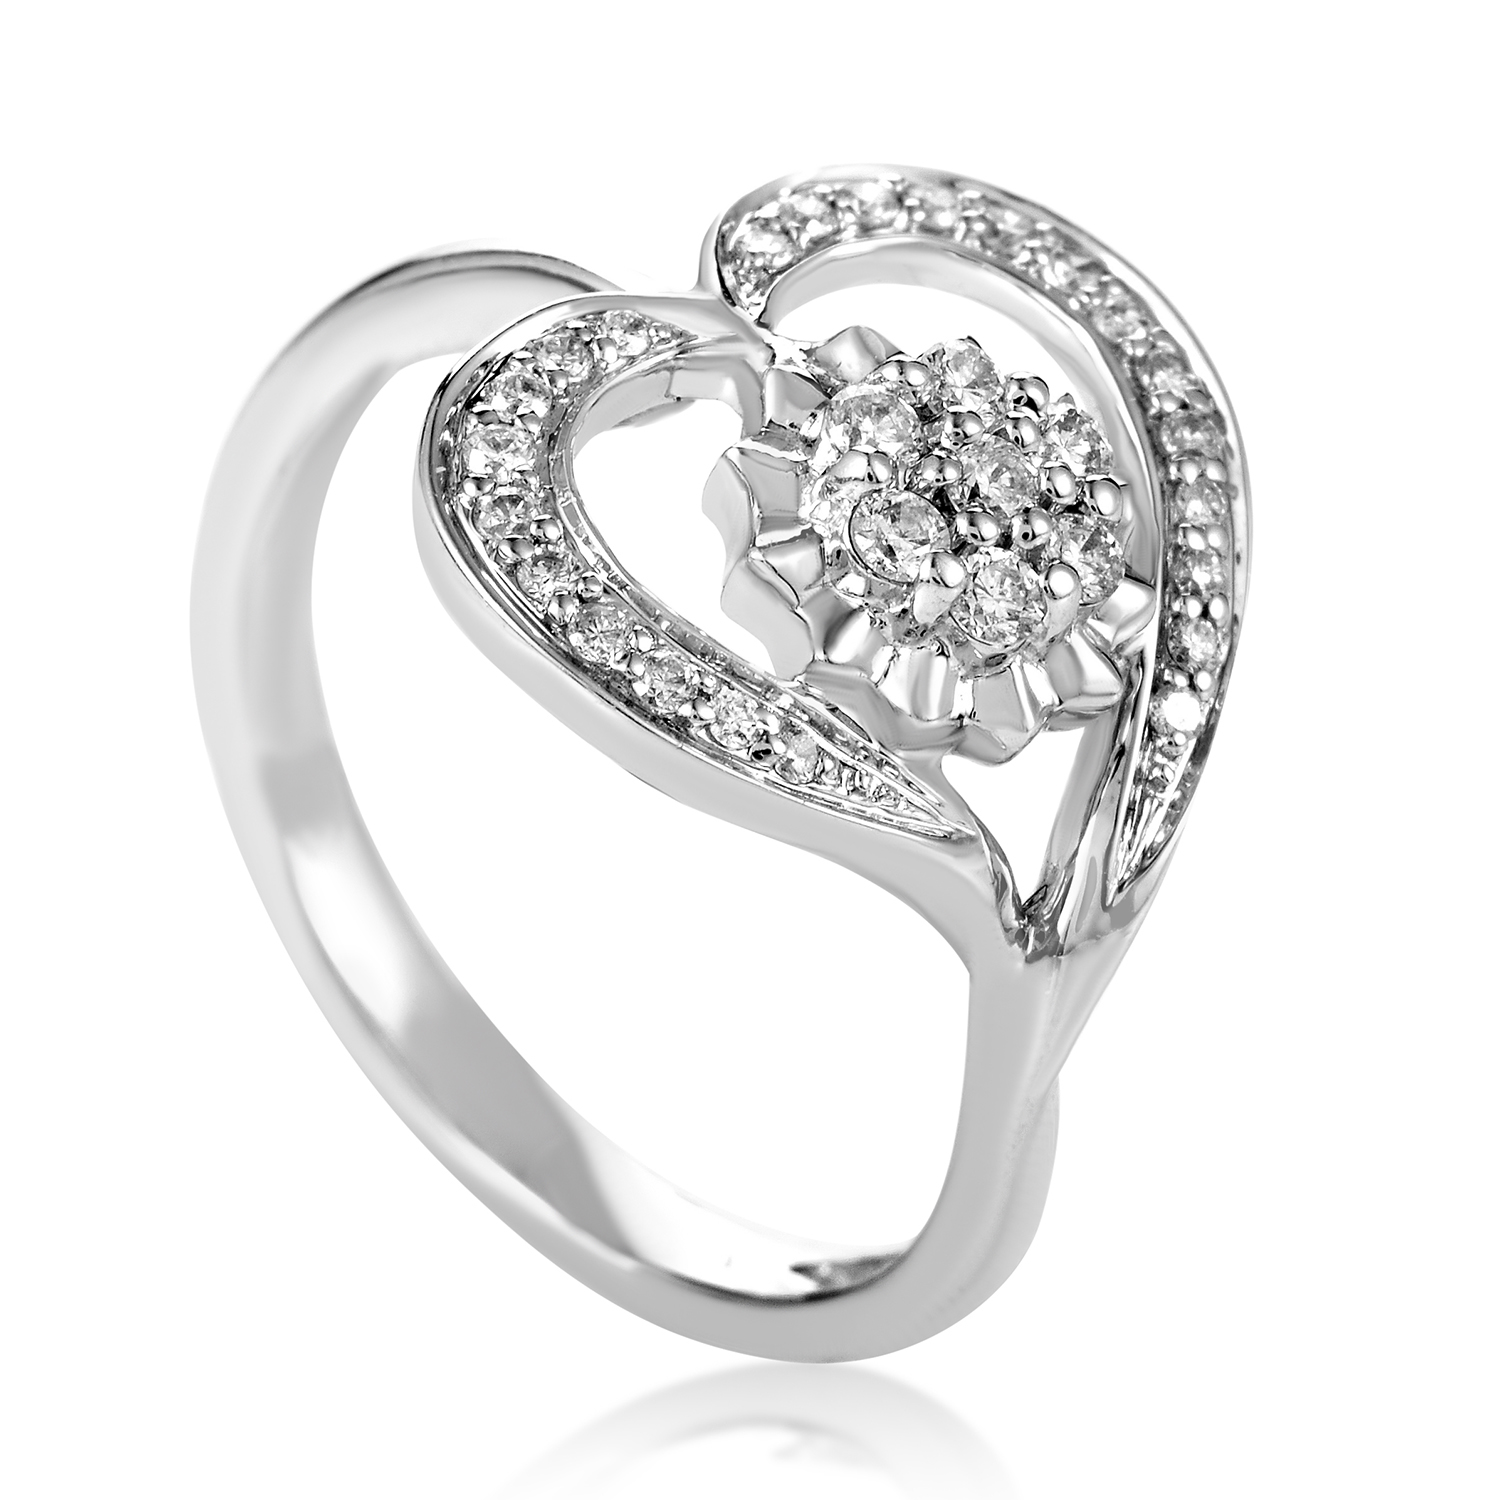 Women's 18K White Gold & Diamond Floral Heart Ring KOA17983RBZ